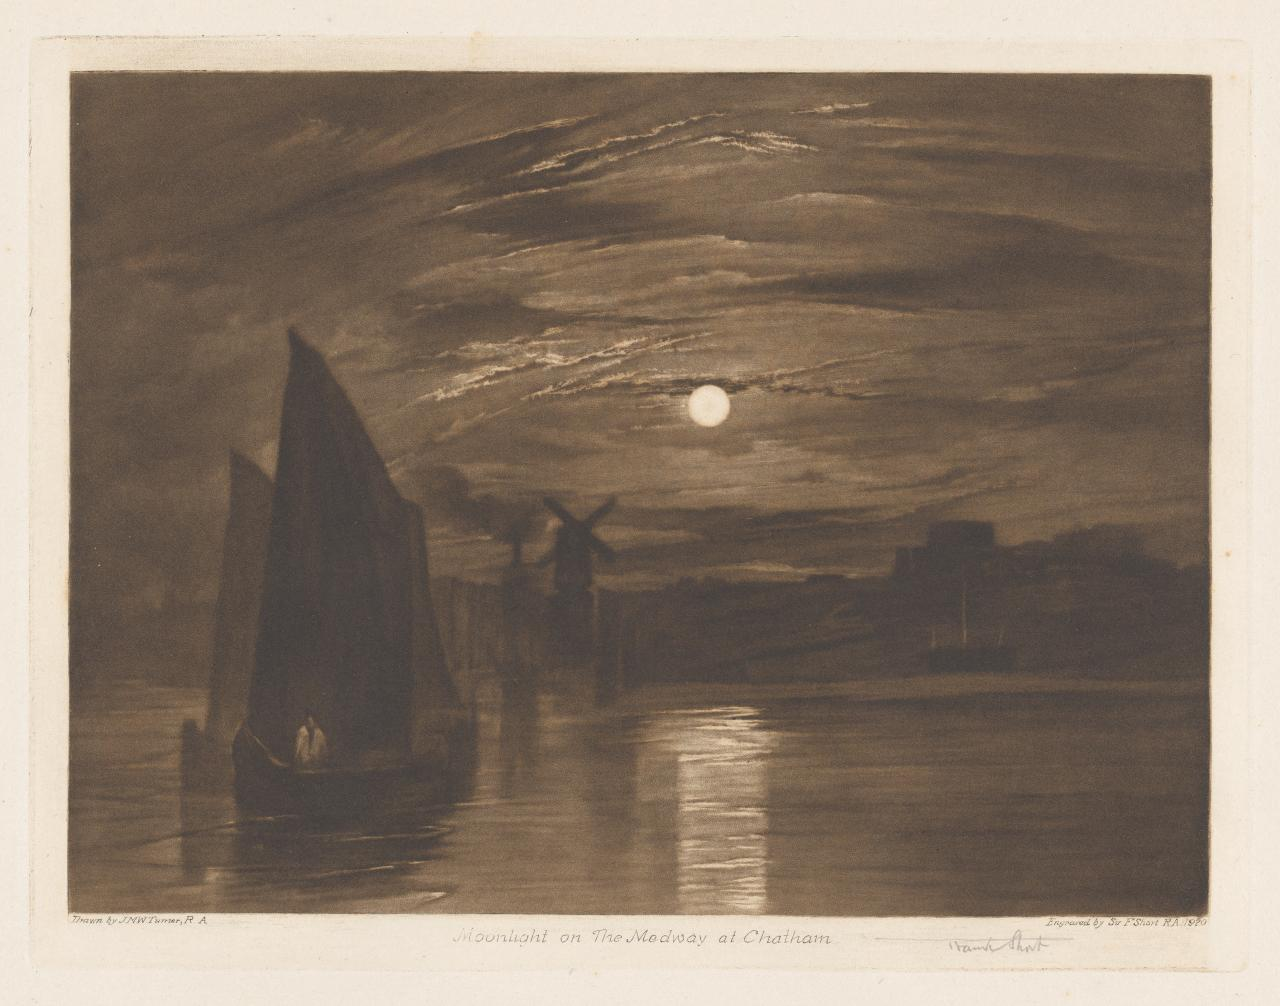 Moonlight on the Medway at Chatham